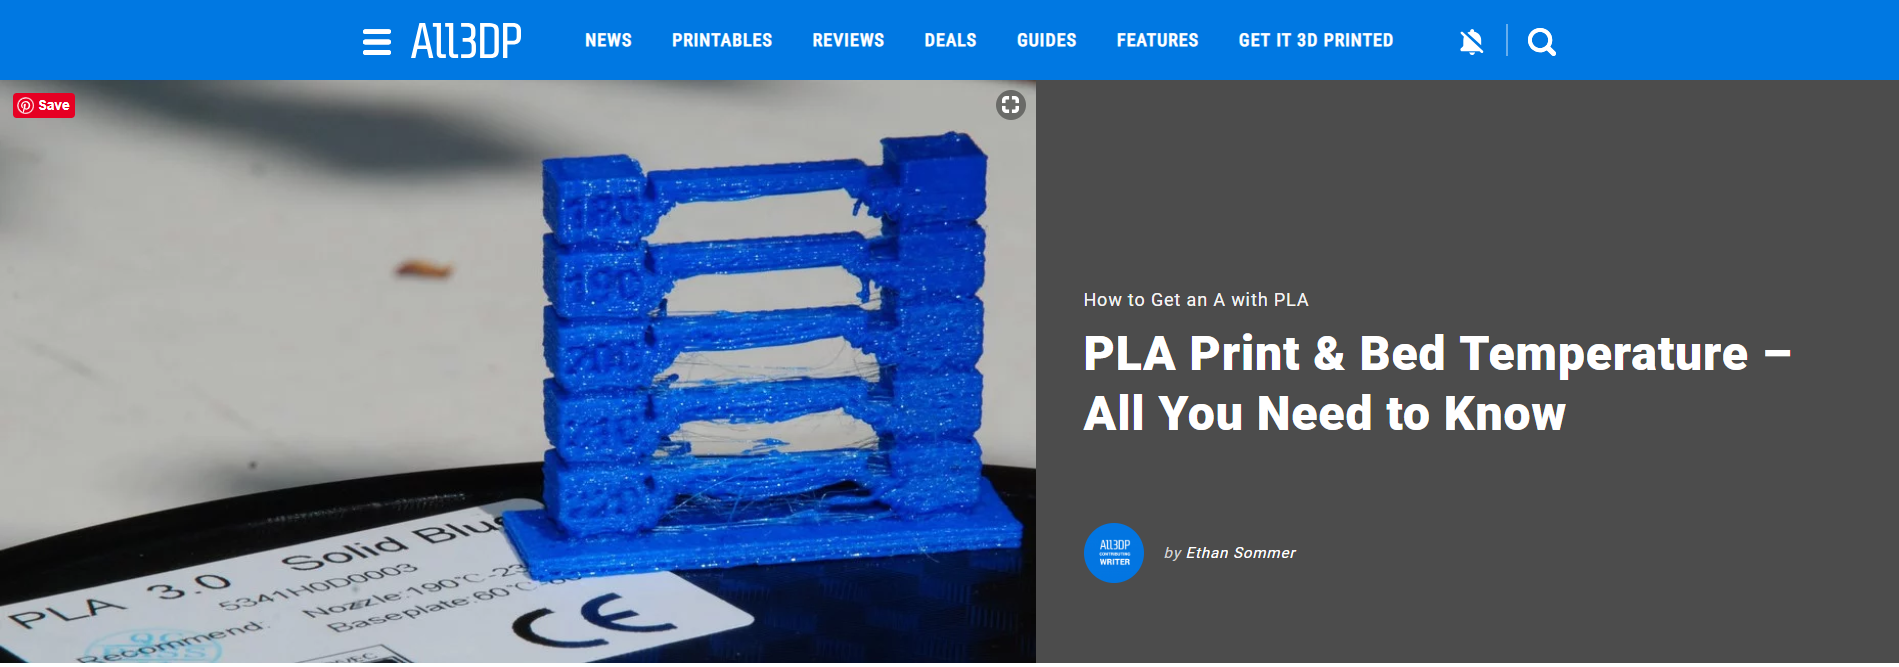 PLA Print & Bed Temperature All You Need to Know Print